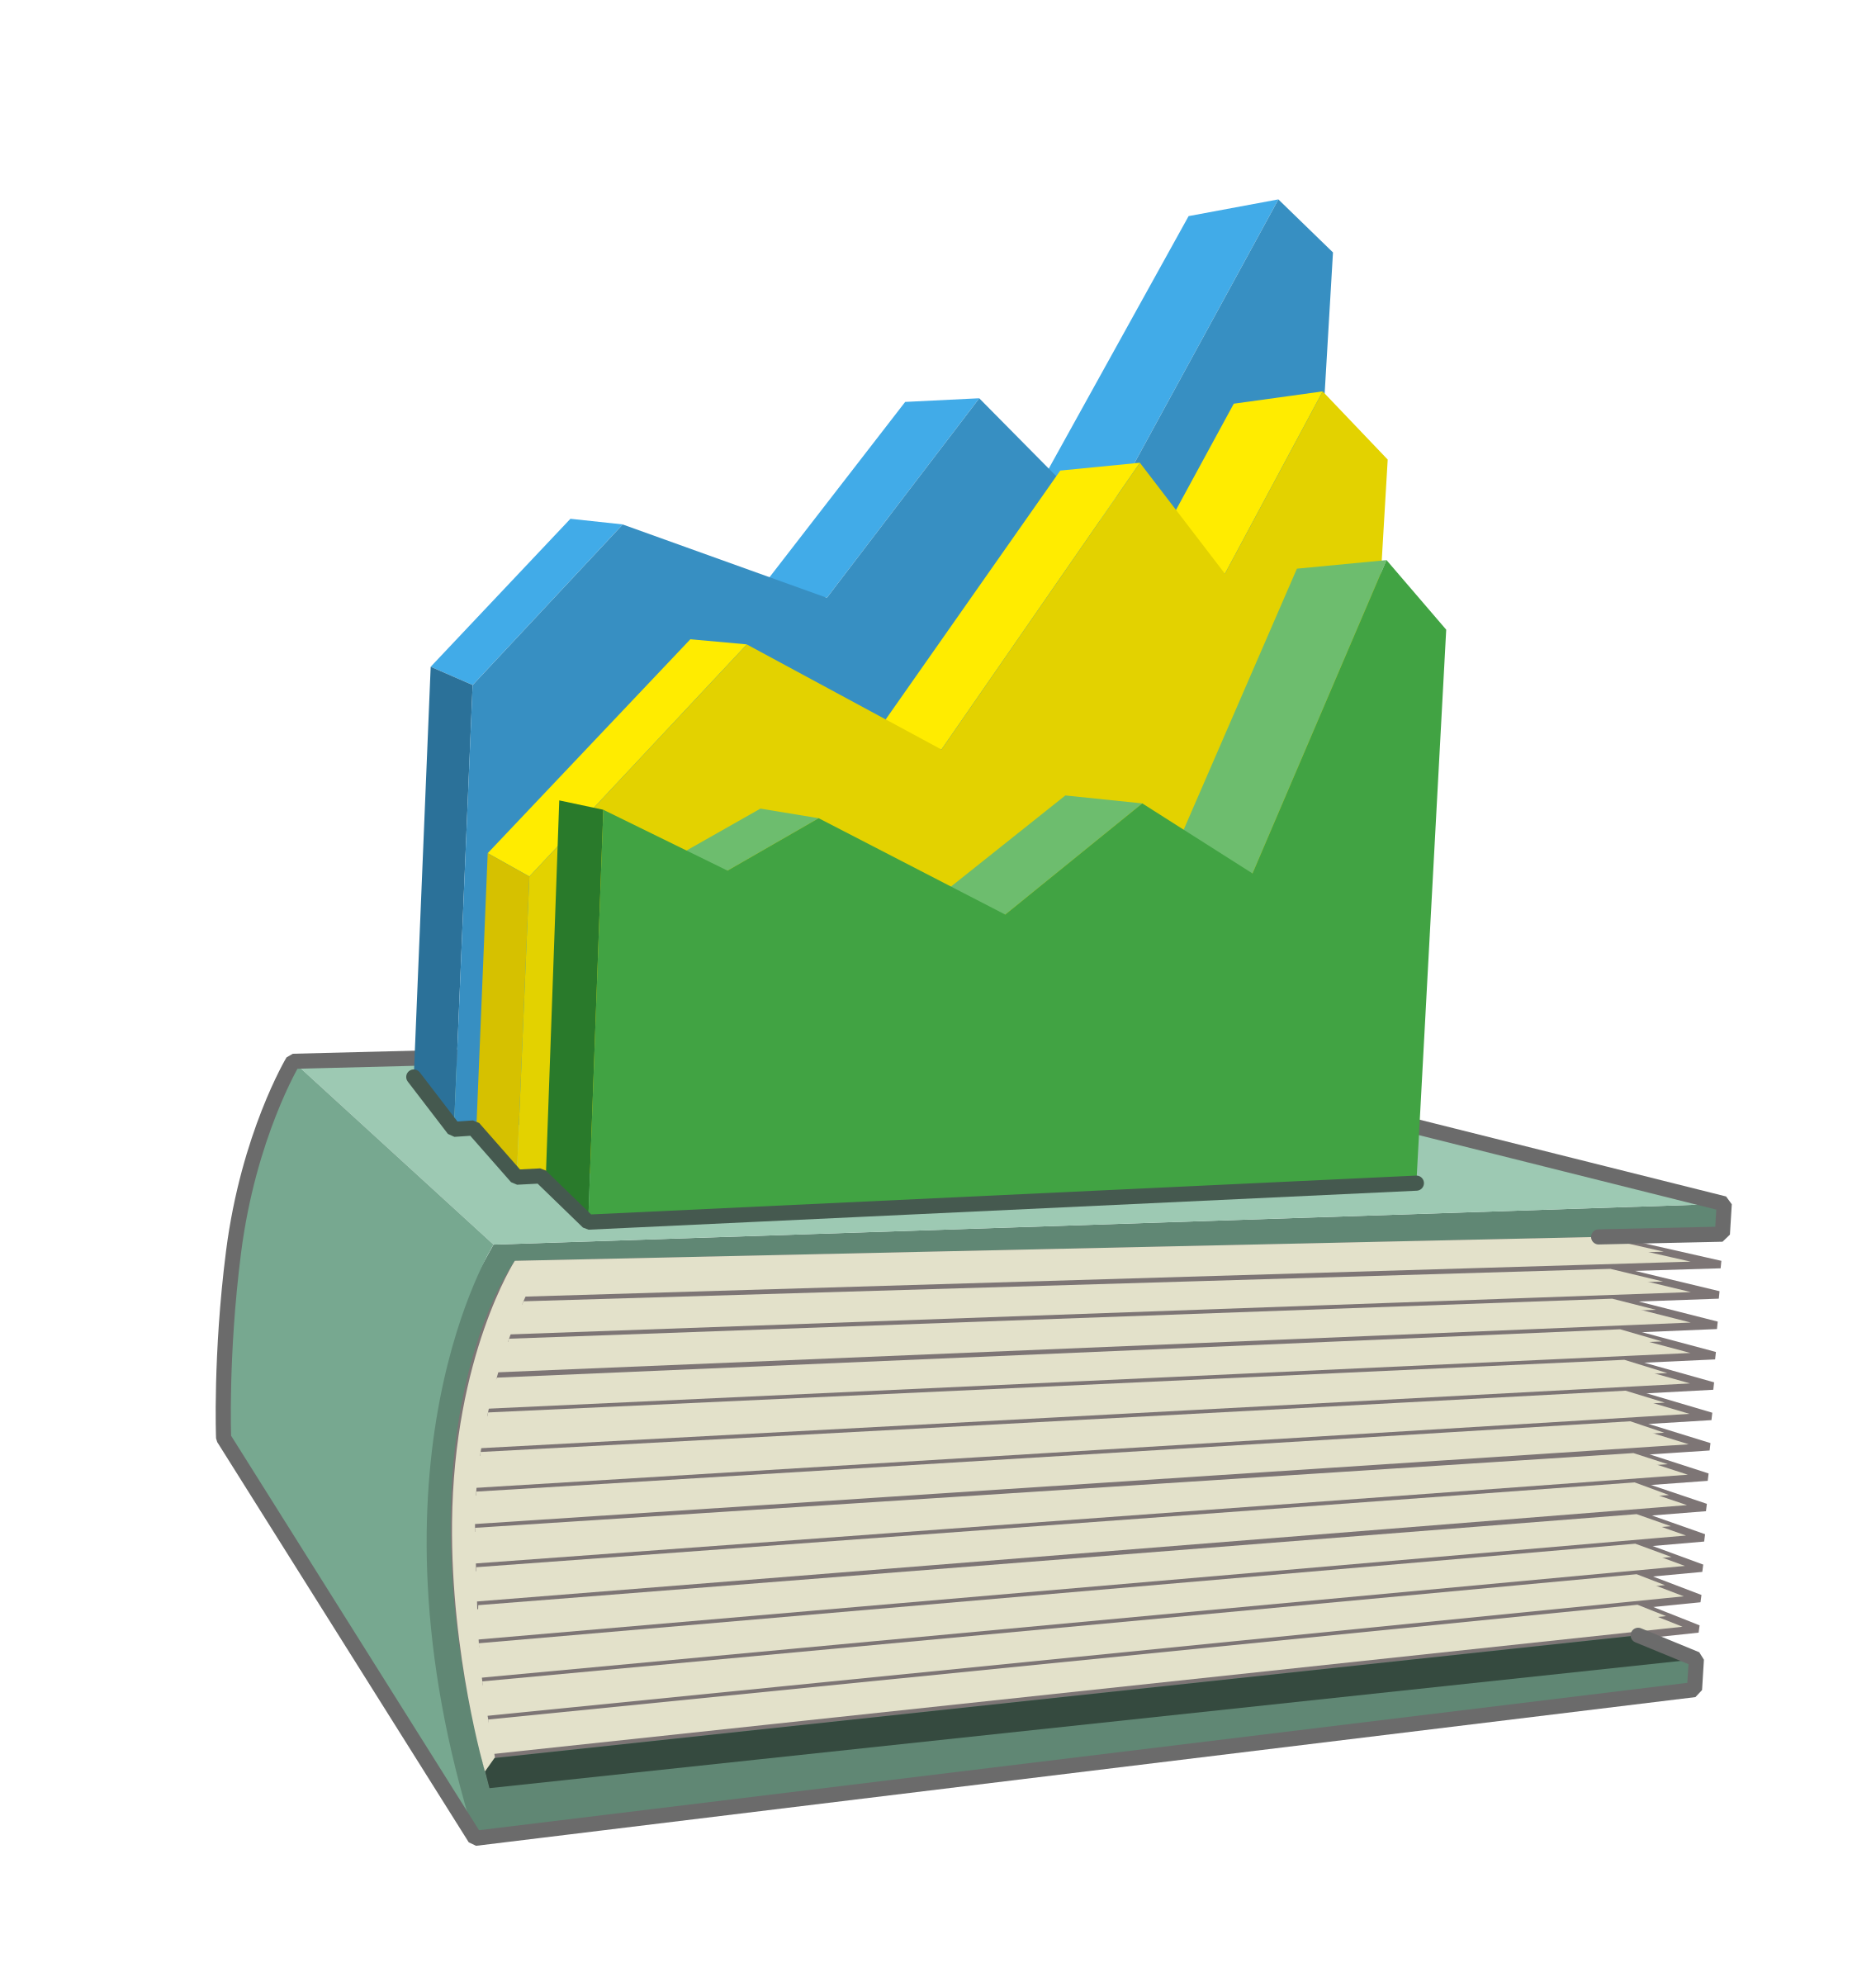 statistical Yearbook by enolynn